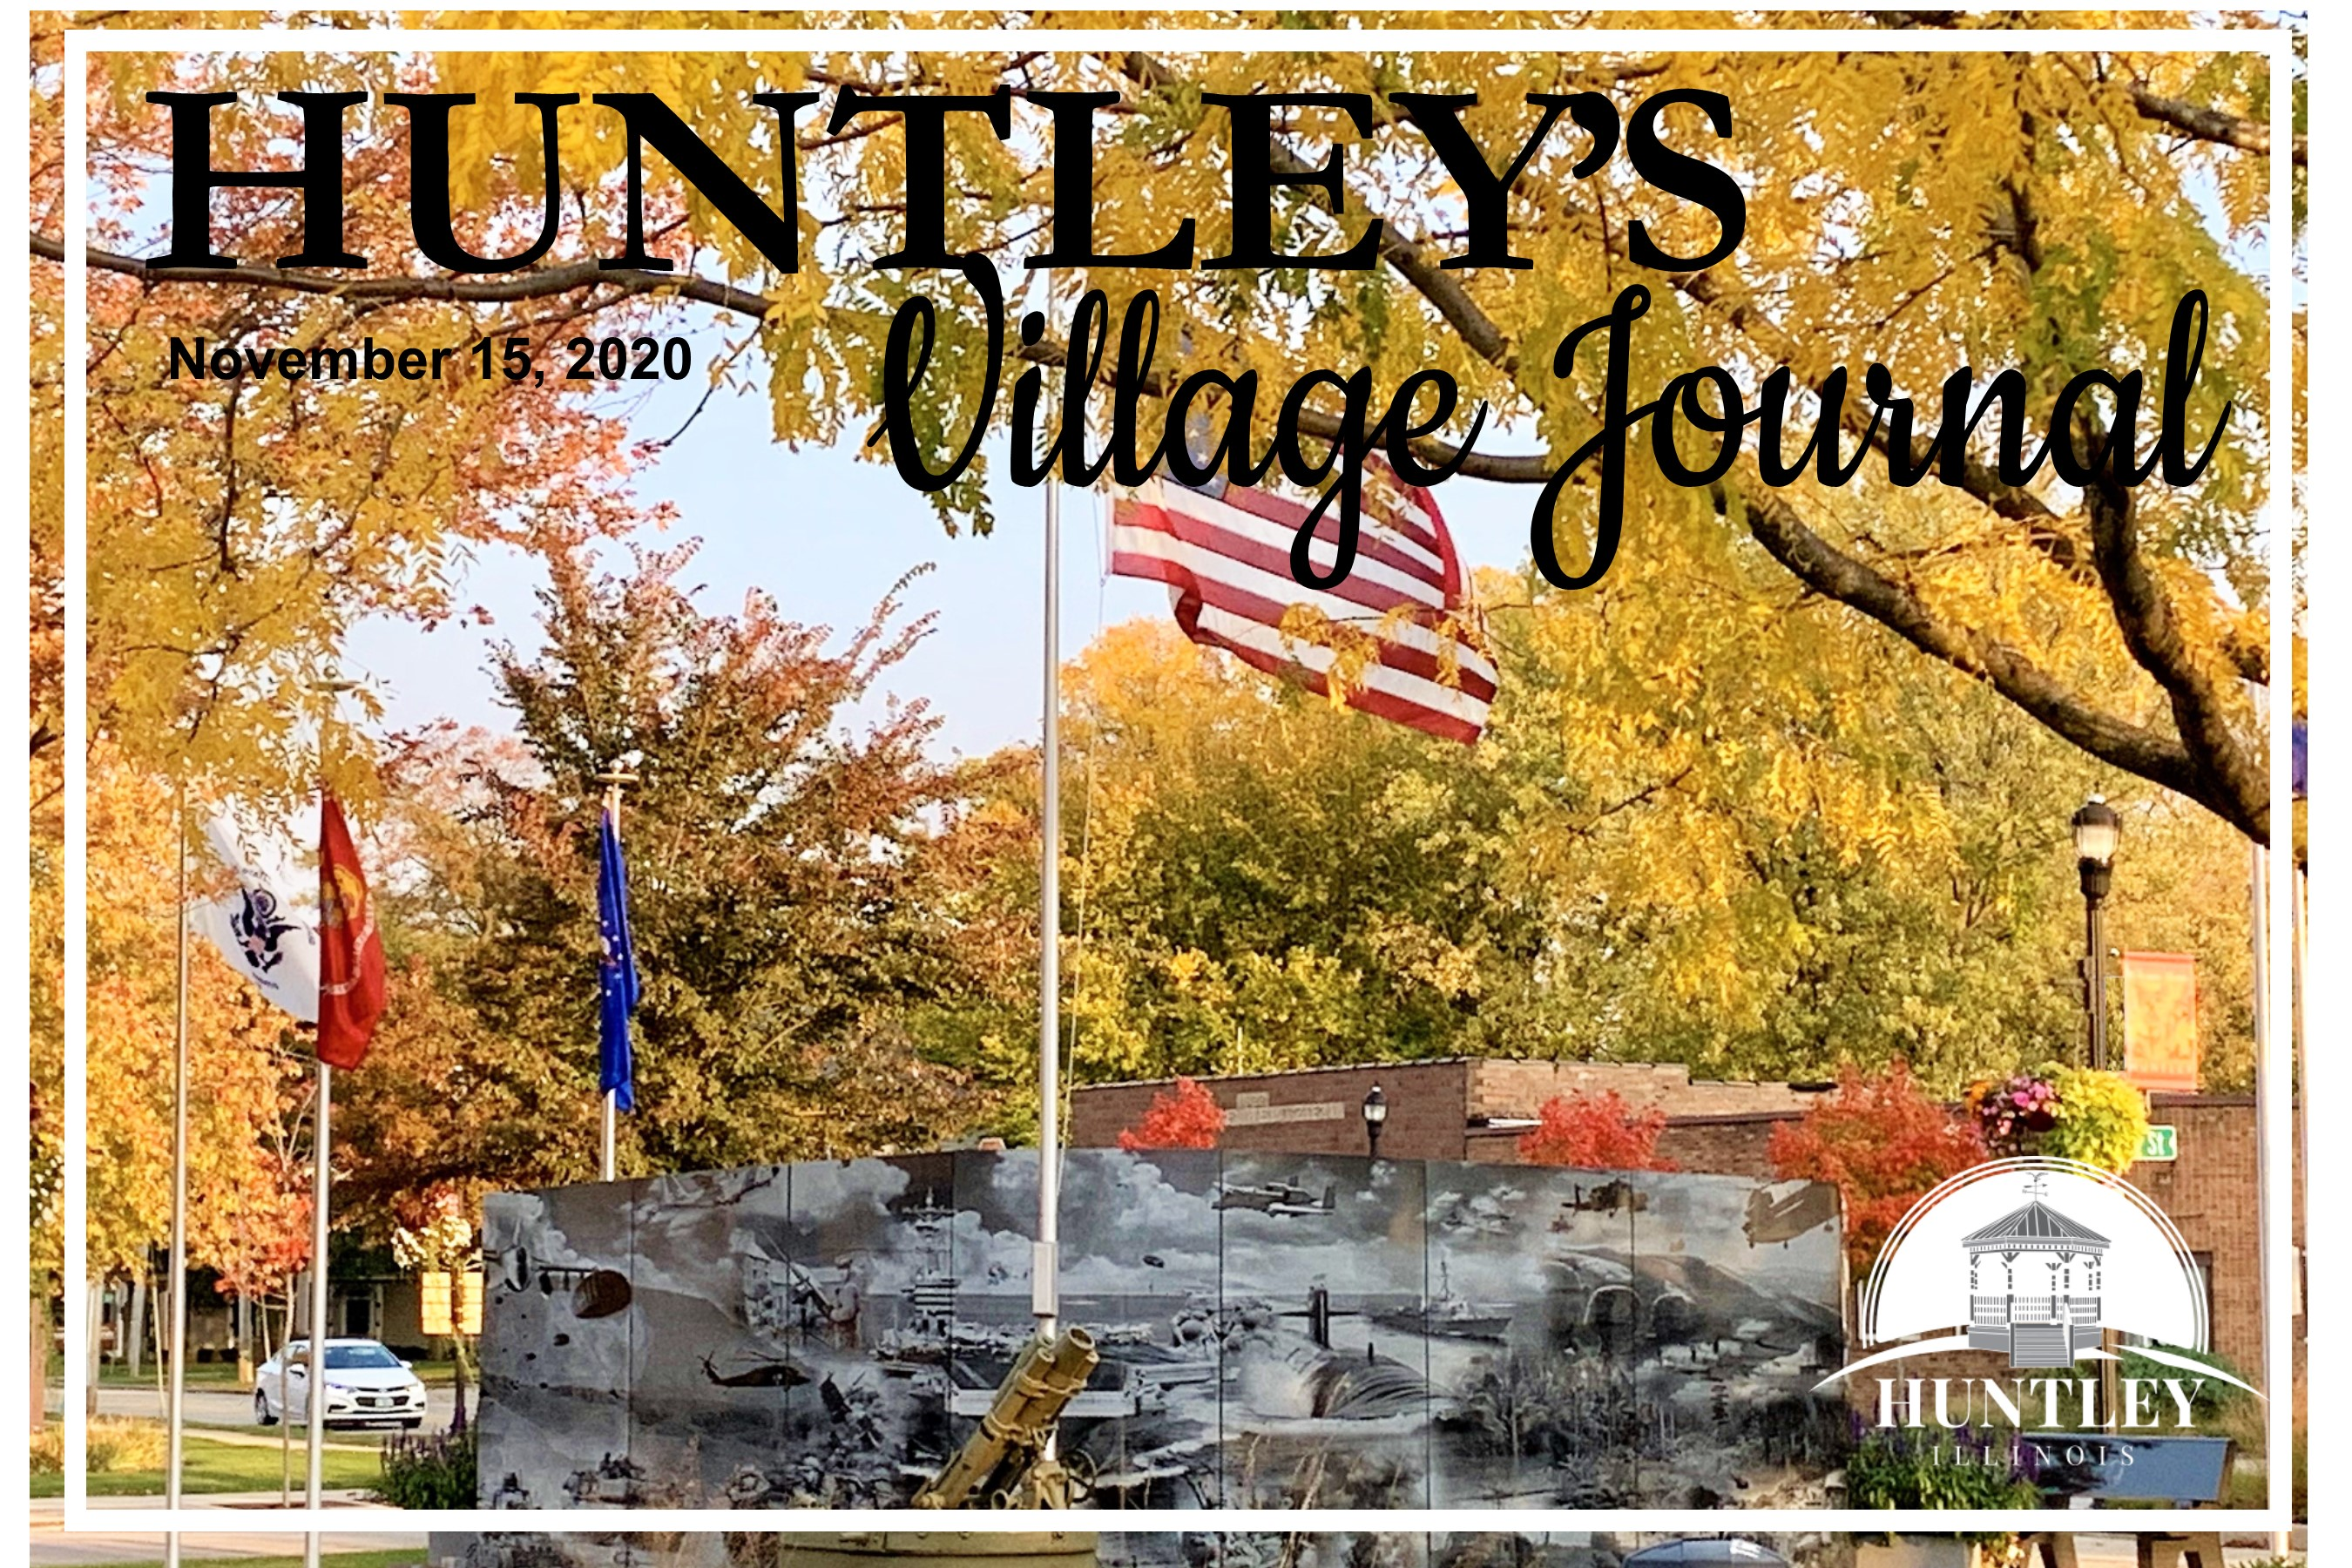 Village Journal News Image november